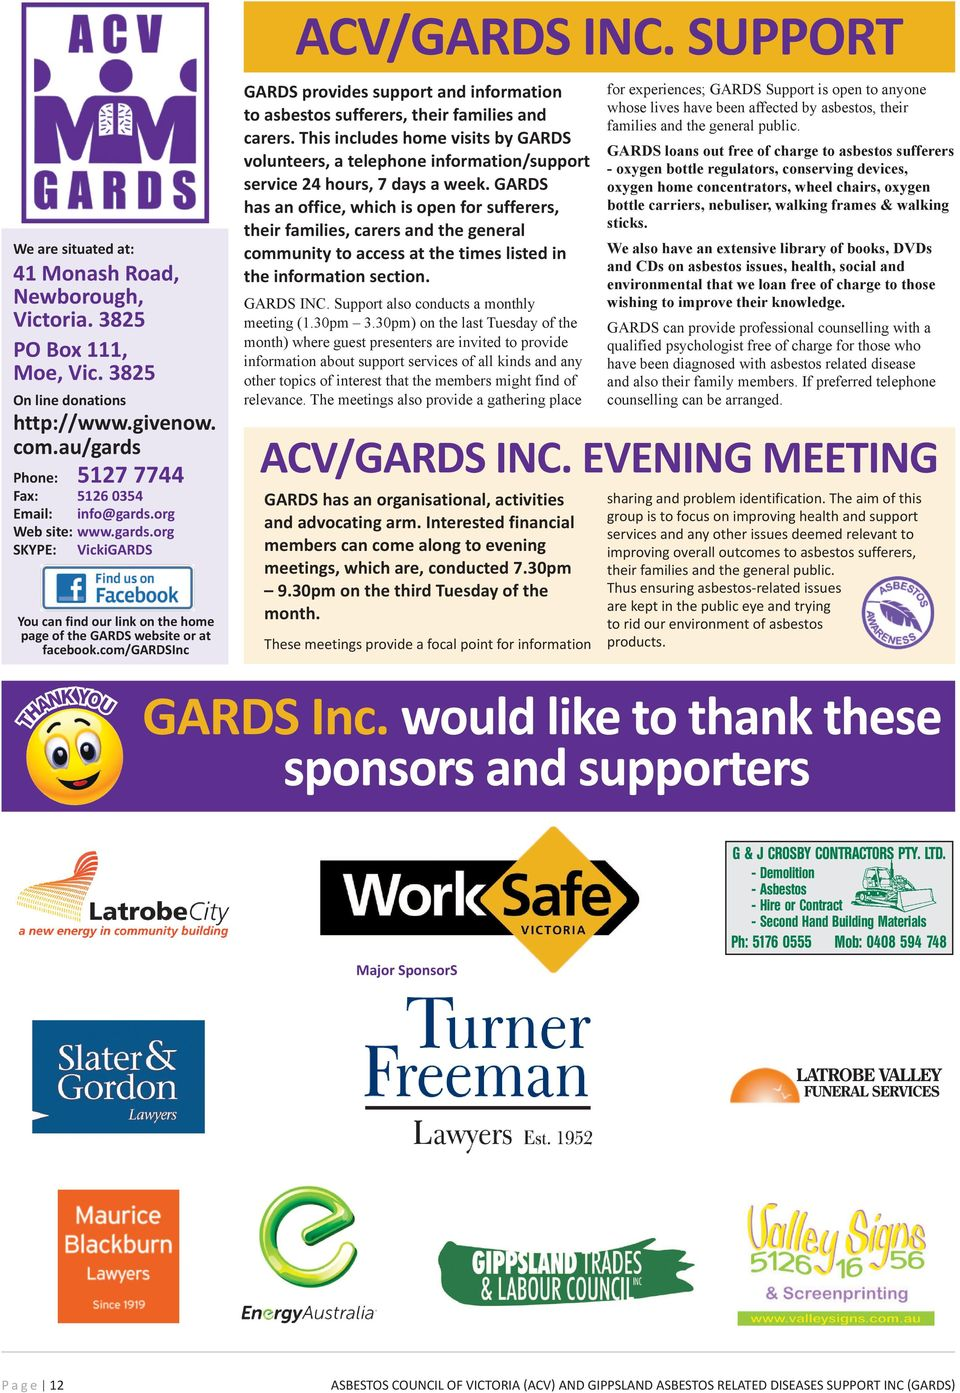 com/gardsinc GARDS provides support and information to asbestos sufferers, their families and carers.